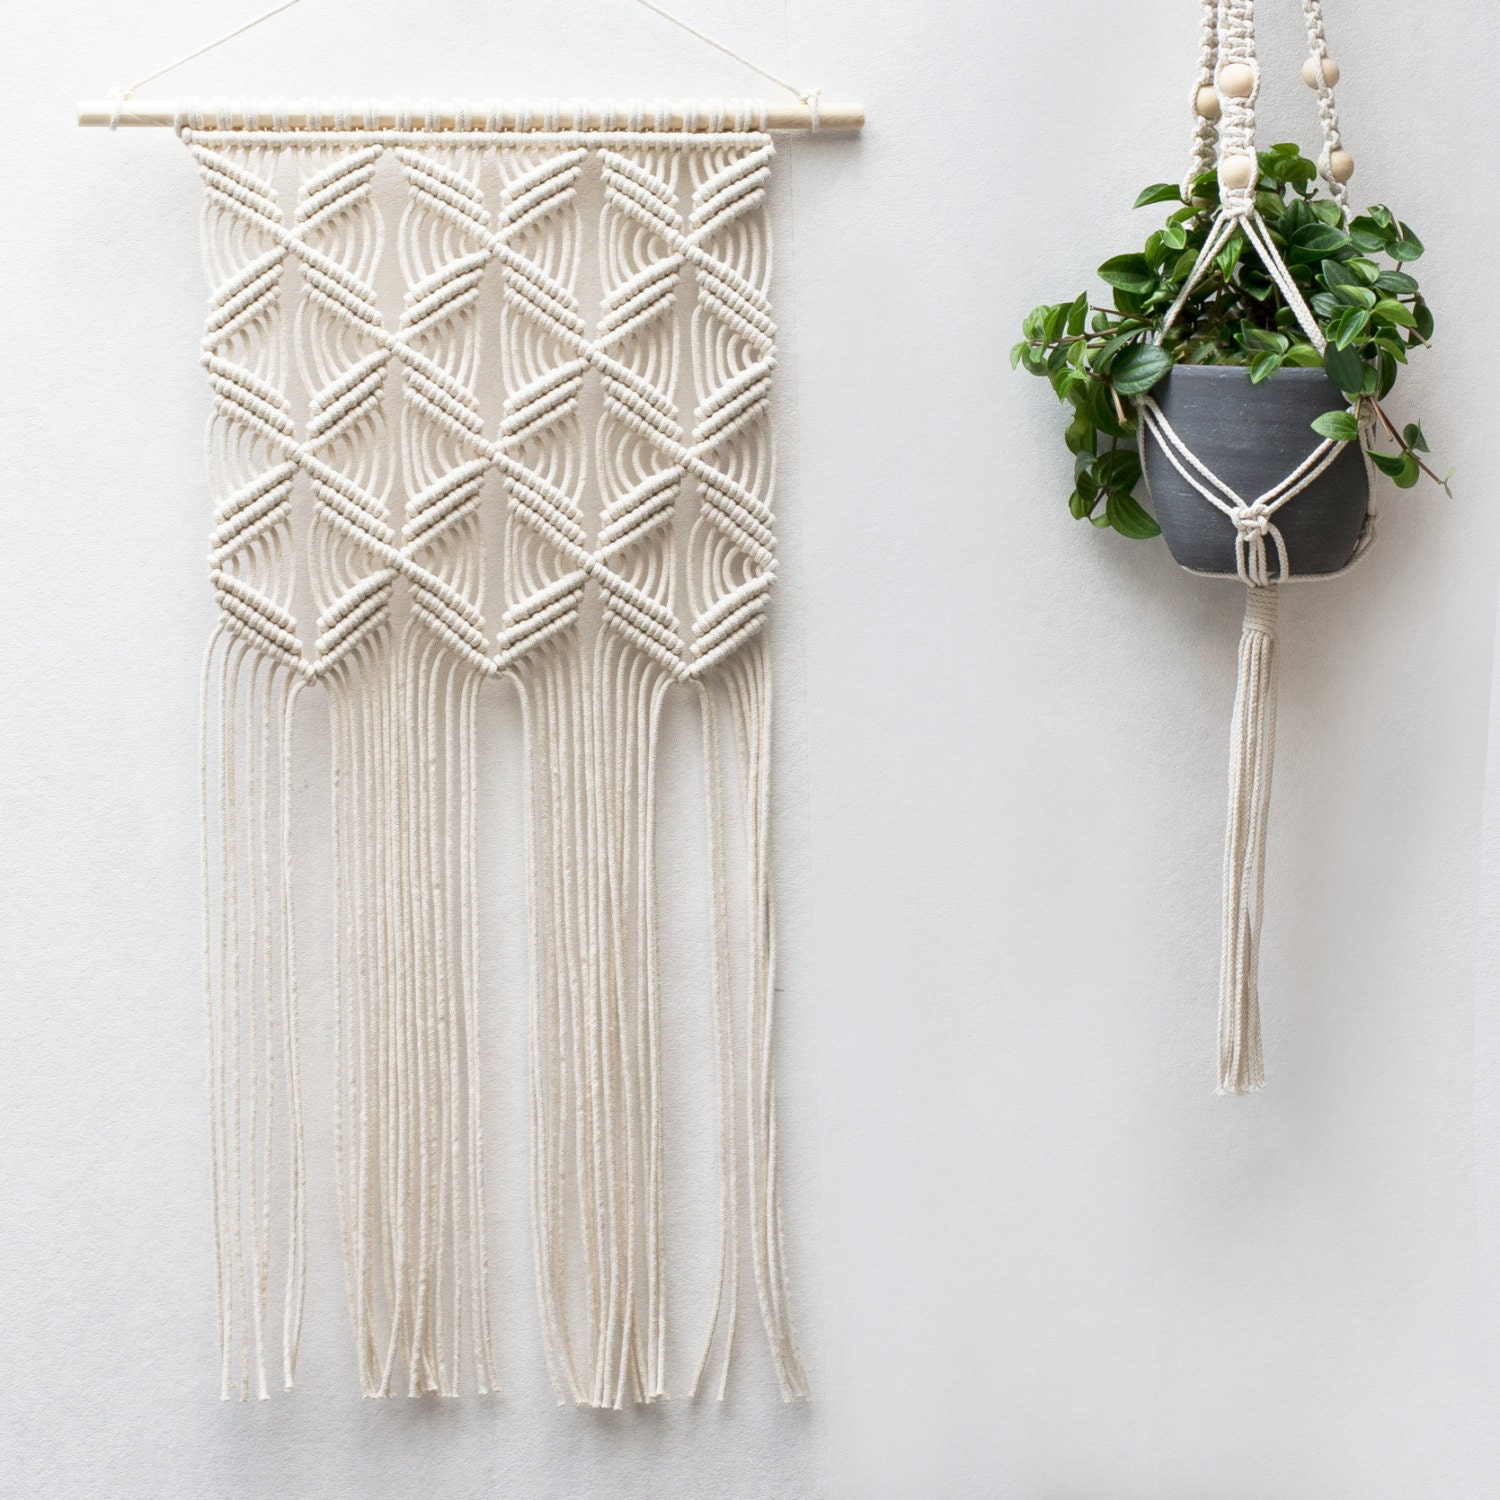 Macrame wall hanging modern macrame weaving by for Wall hangings